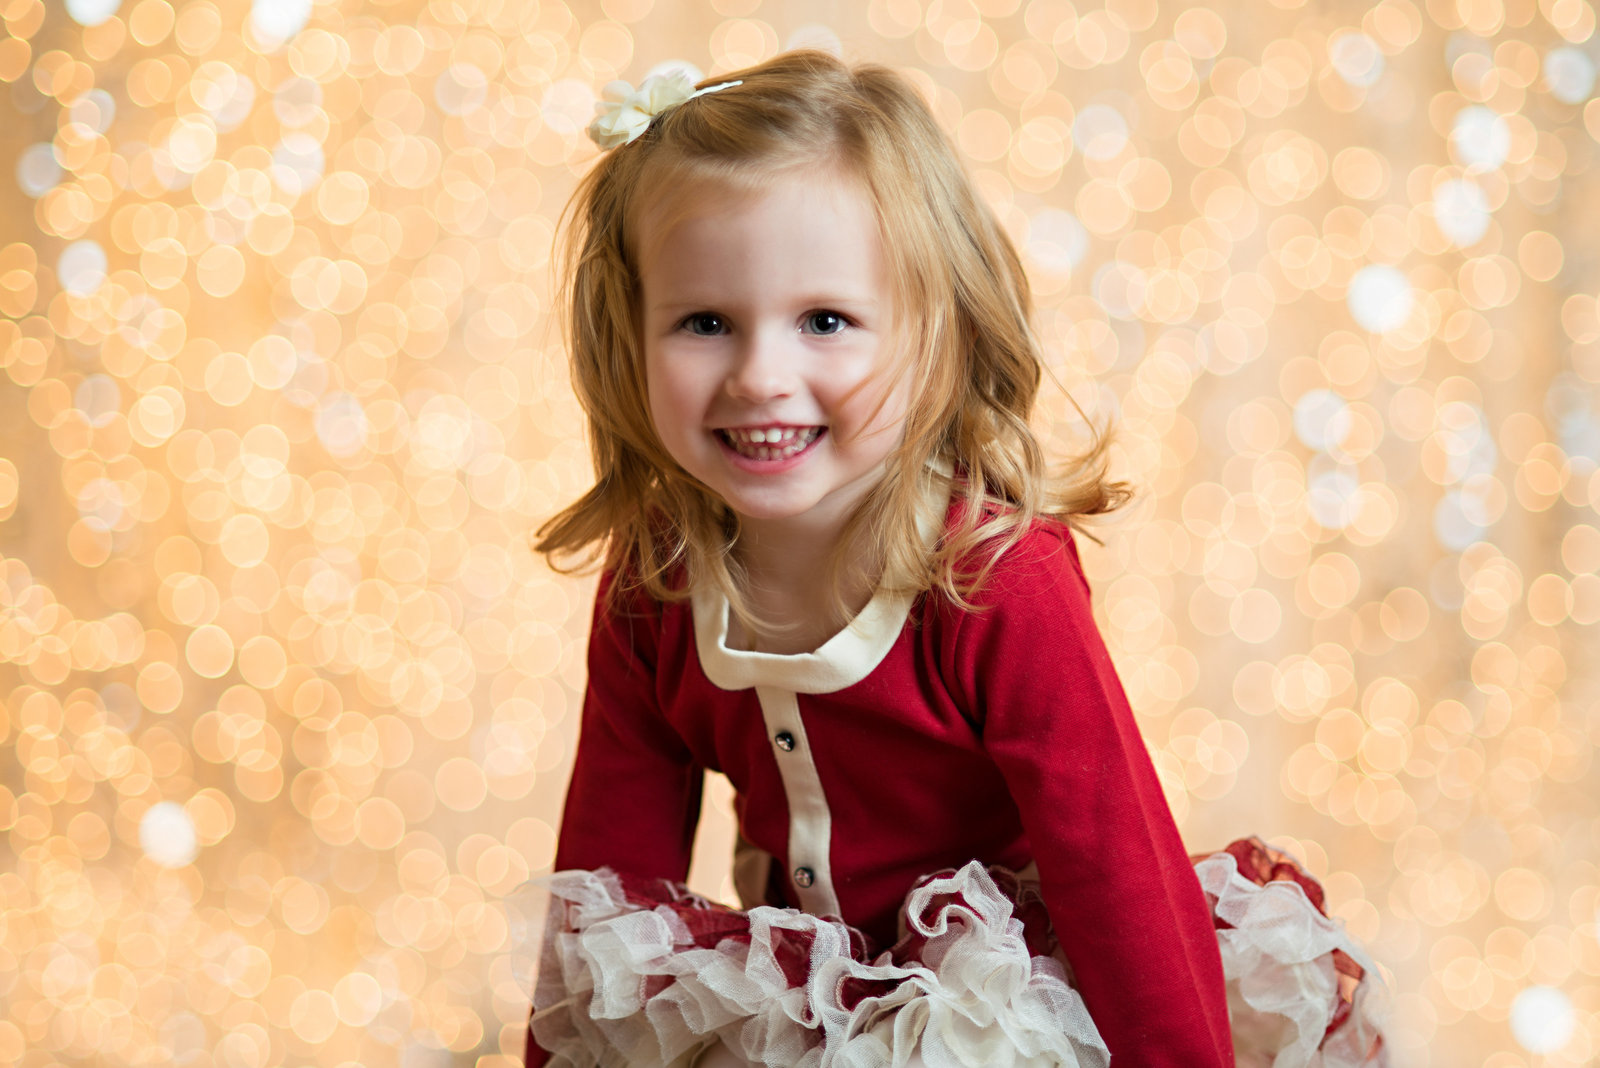 caitlin-chadwick-studios-holiday-mini-portrait-beautiful-blonde-blue-eyed-girl-child-happy-gold-festive_0001-3500